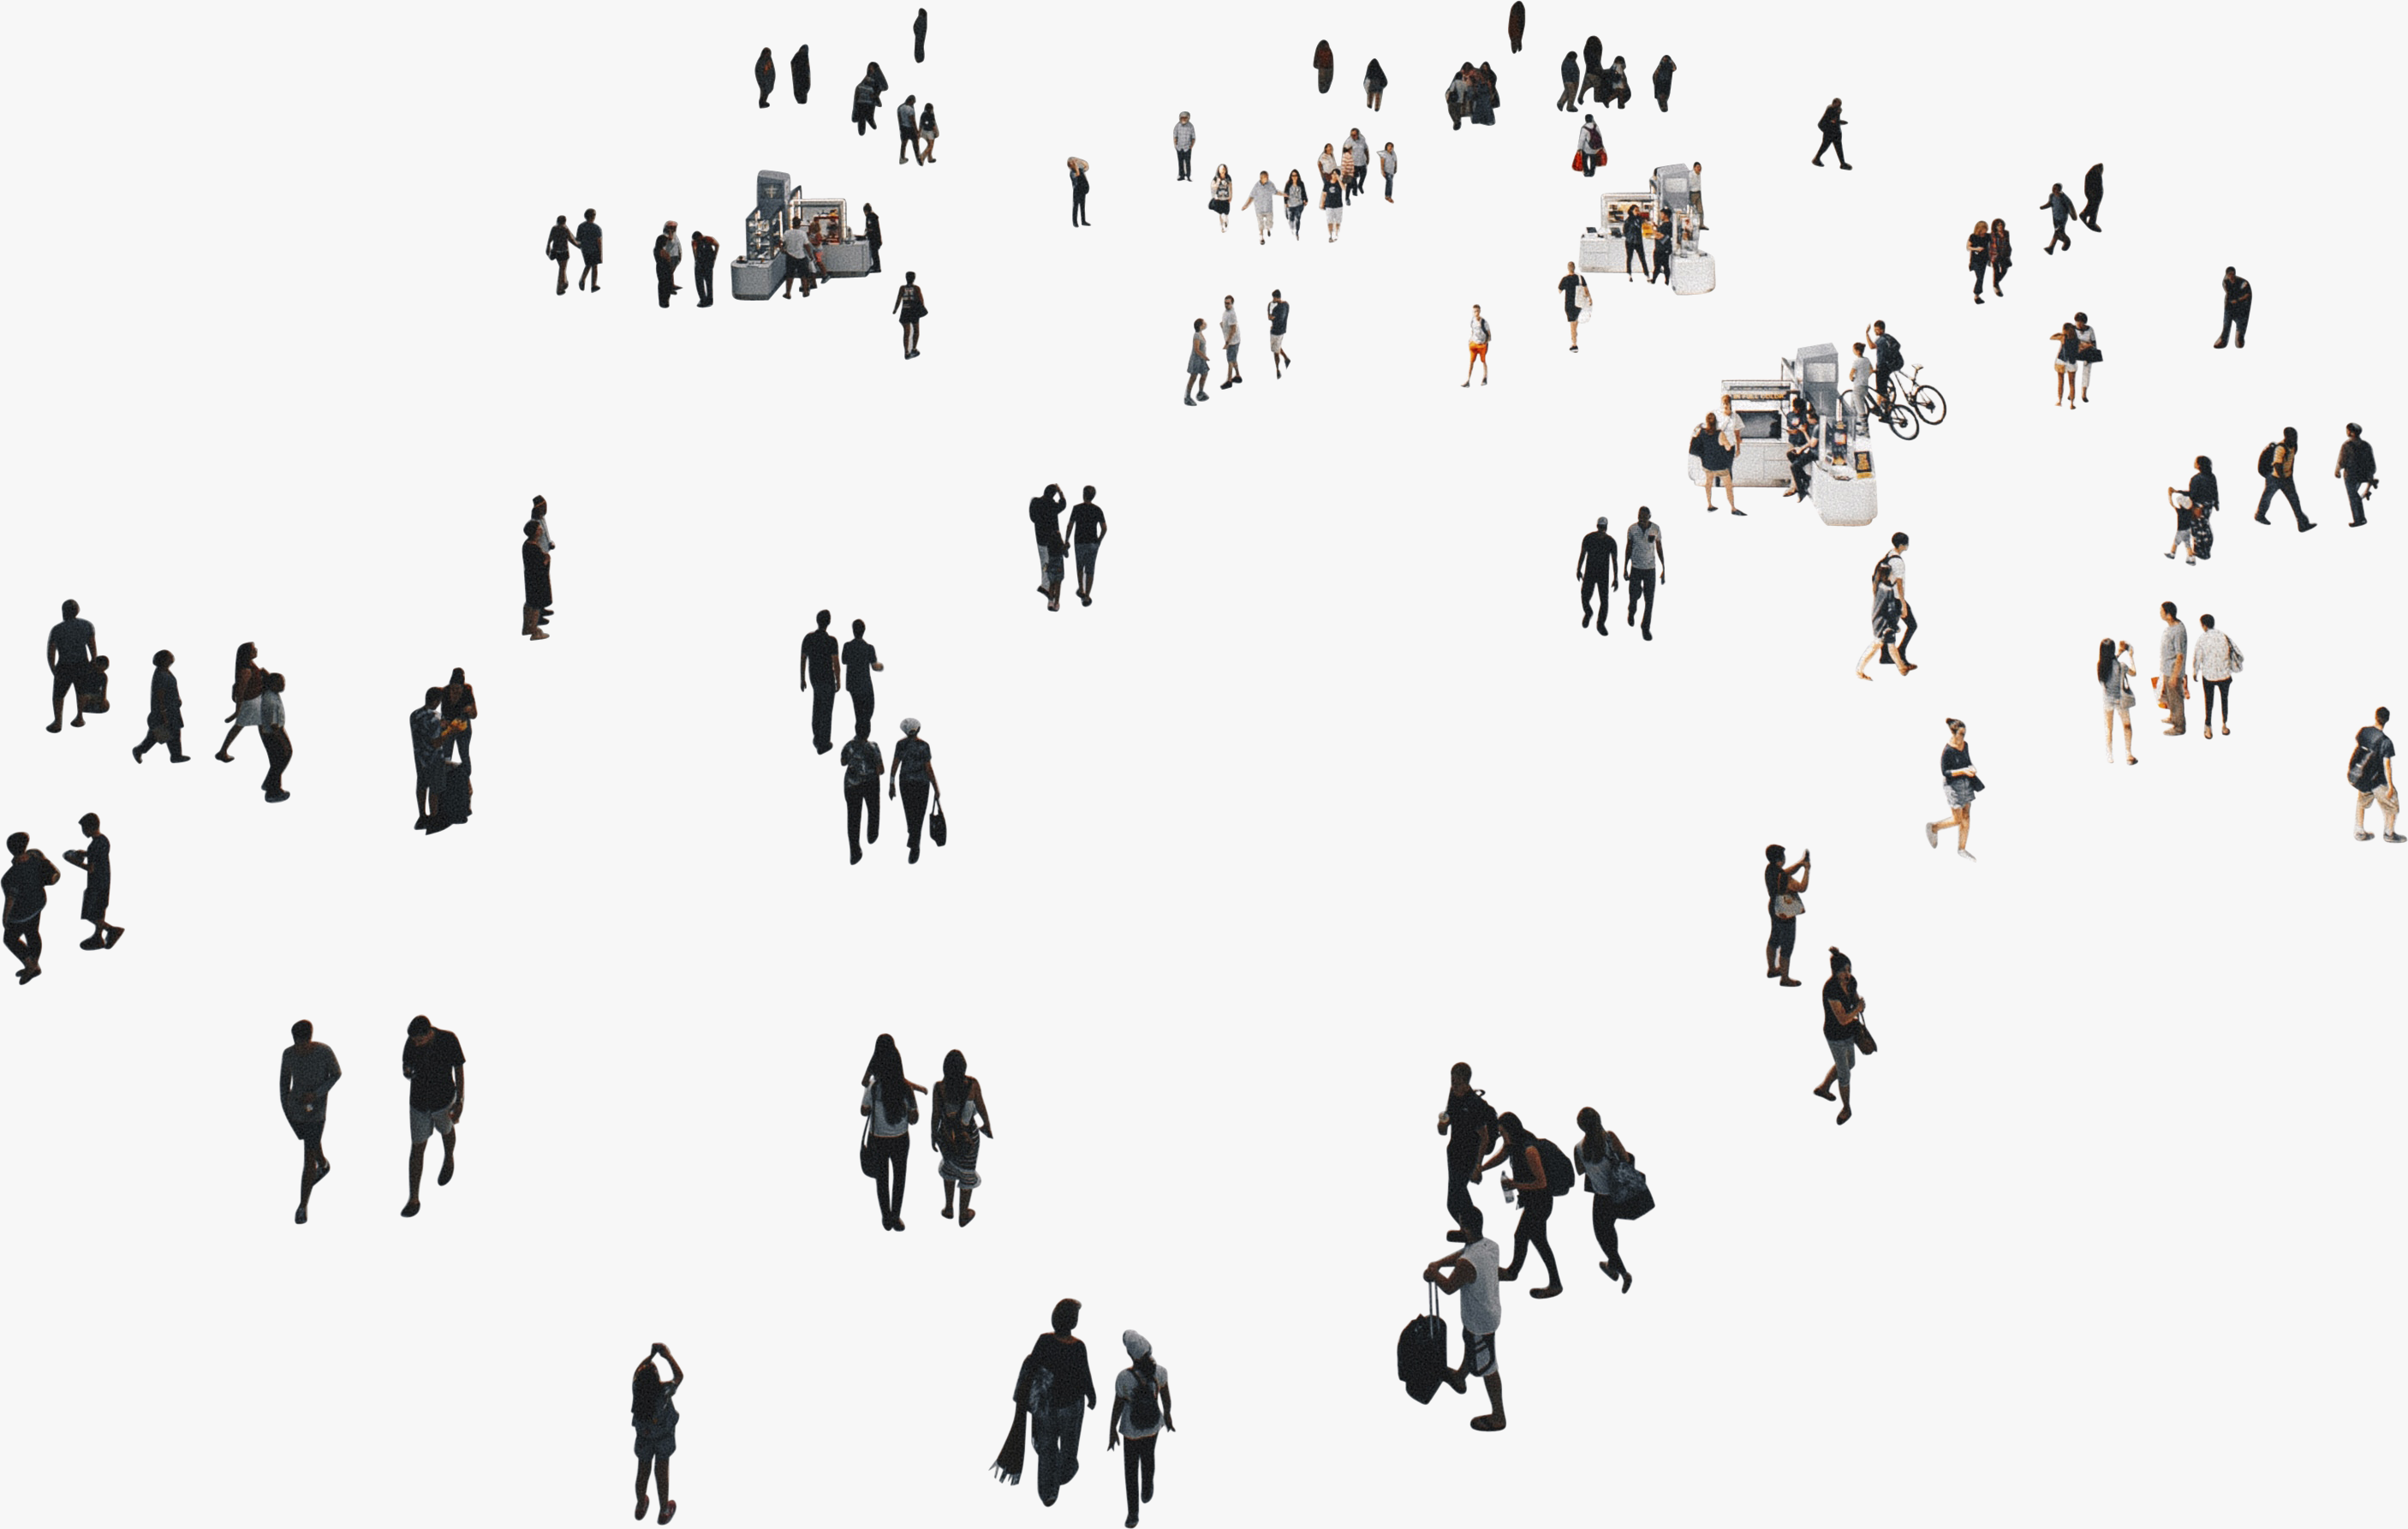 image of a large group of people in a public space cutout.